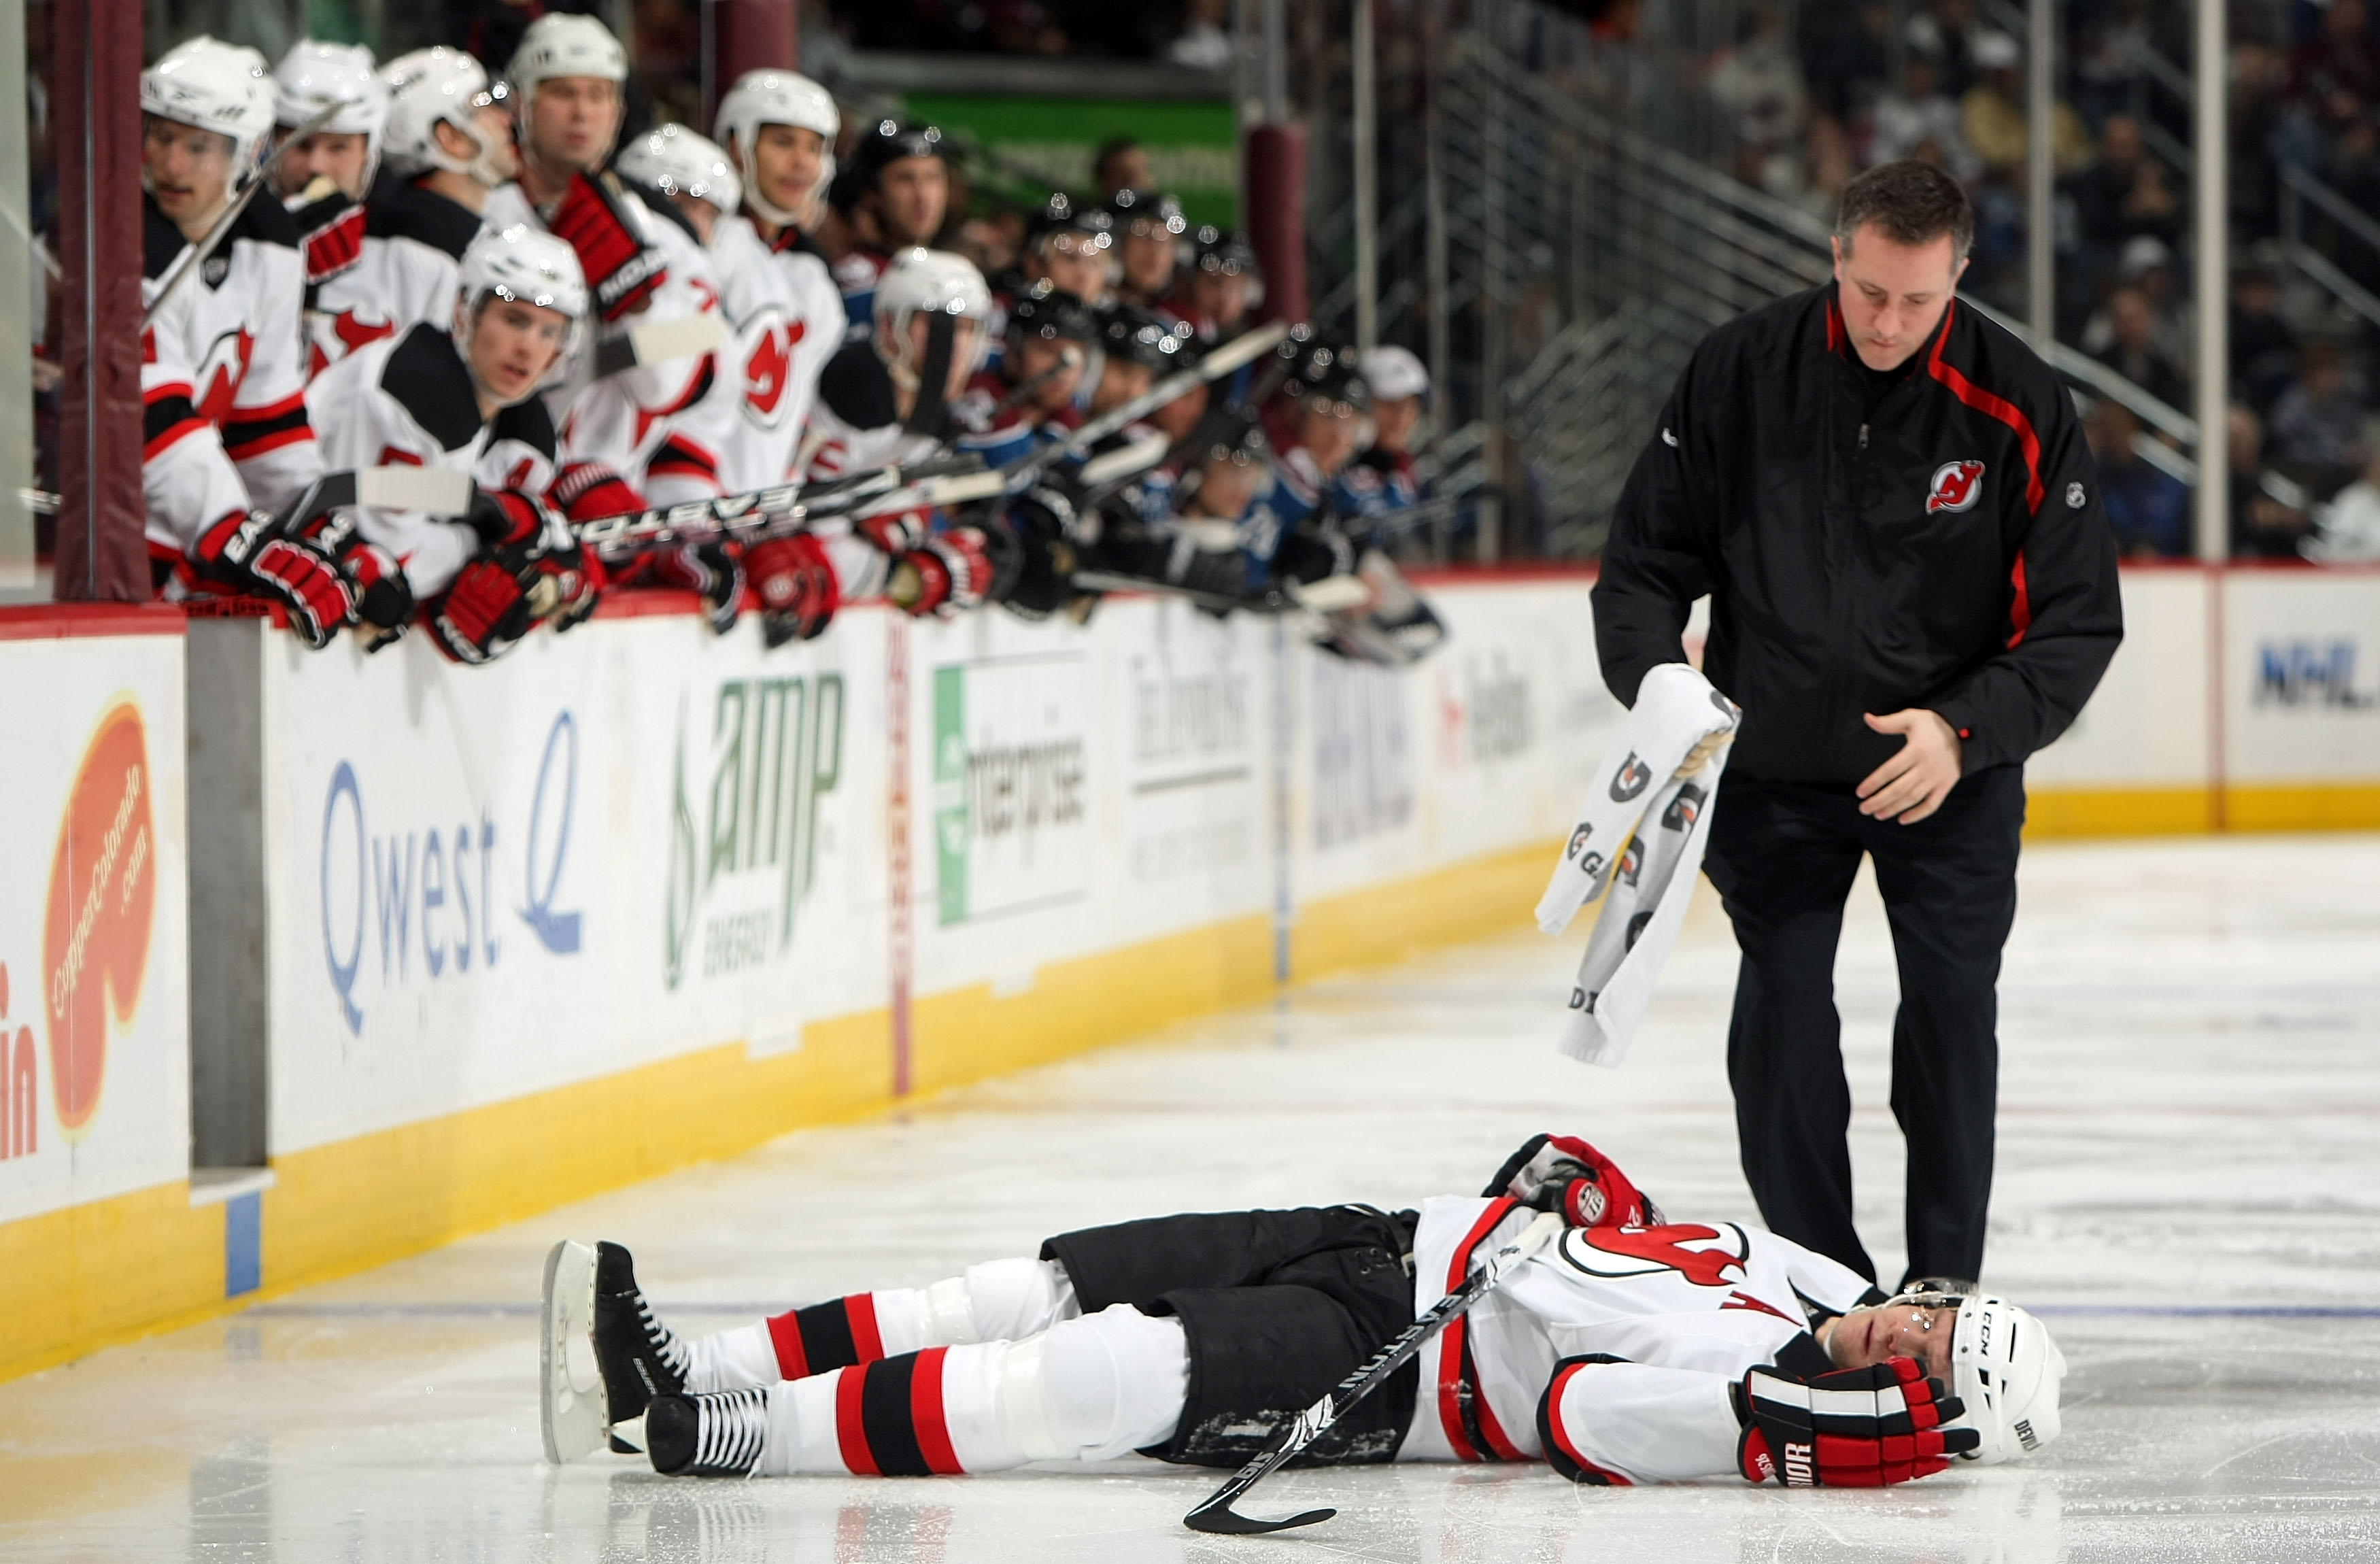 Athletic trainer Rich Stinziano spent 10 years helping the Devils, including Patrik Elias in 2010. (Getty Images)